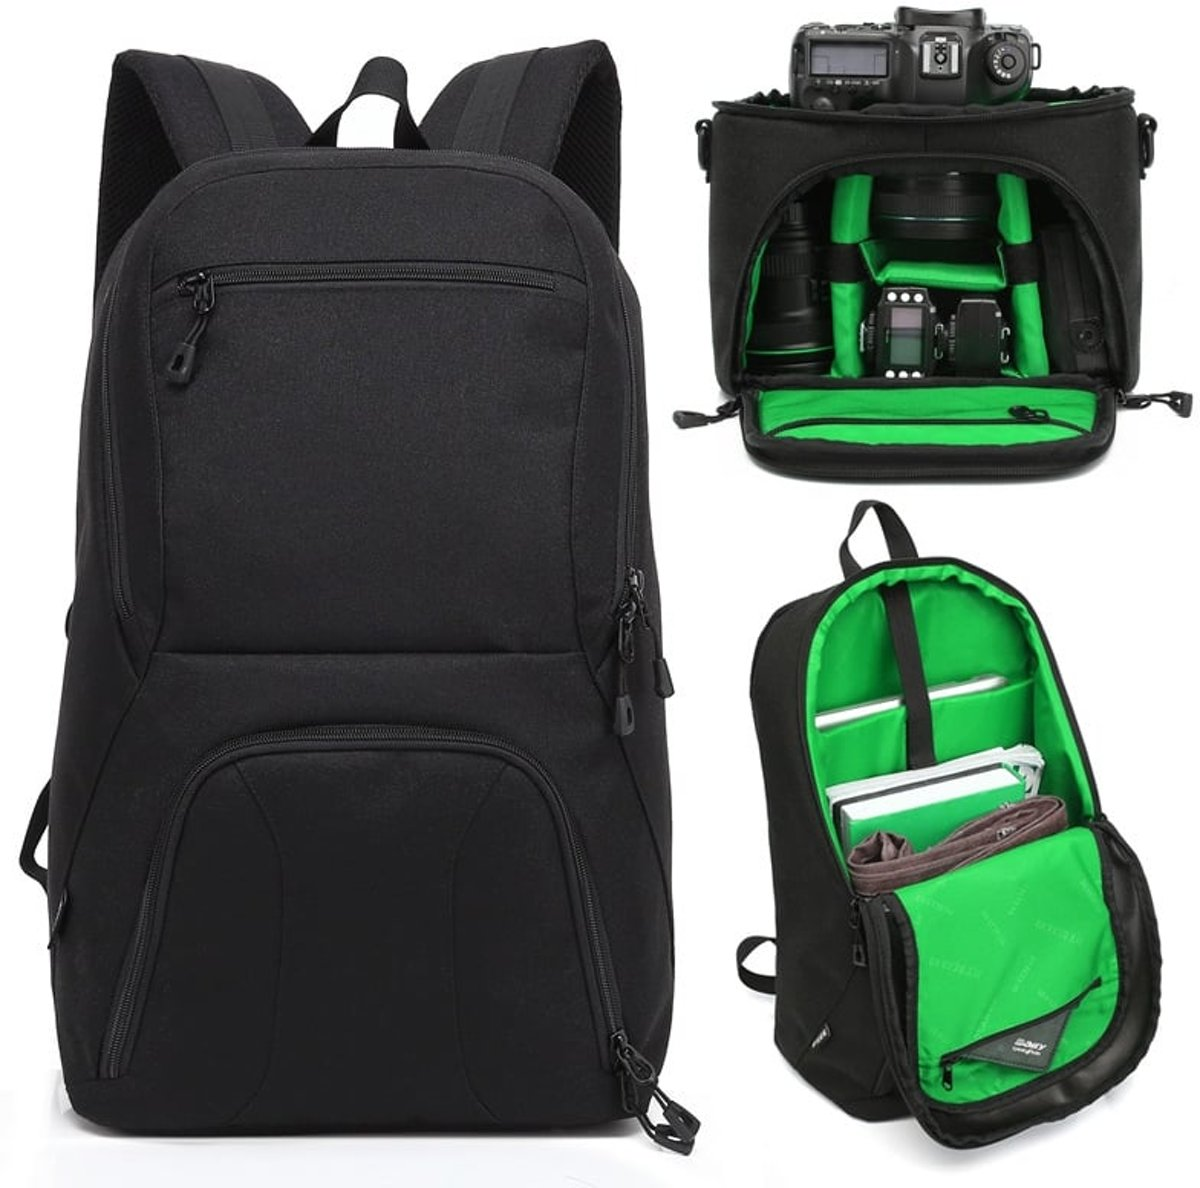 HUWANG 2 in 1 Waterproof Anti-theft Outdoor Dual Shoulders Backpack + Shockproof Camera Case Bag(Green) kopen